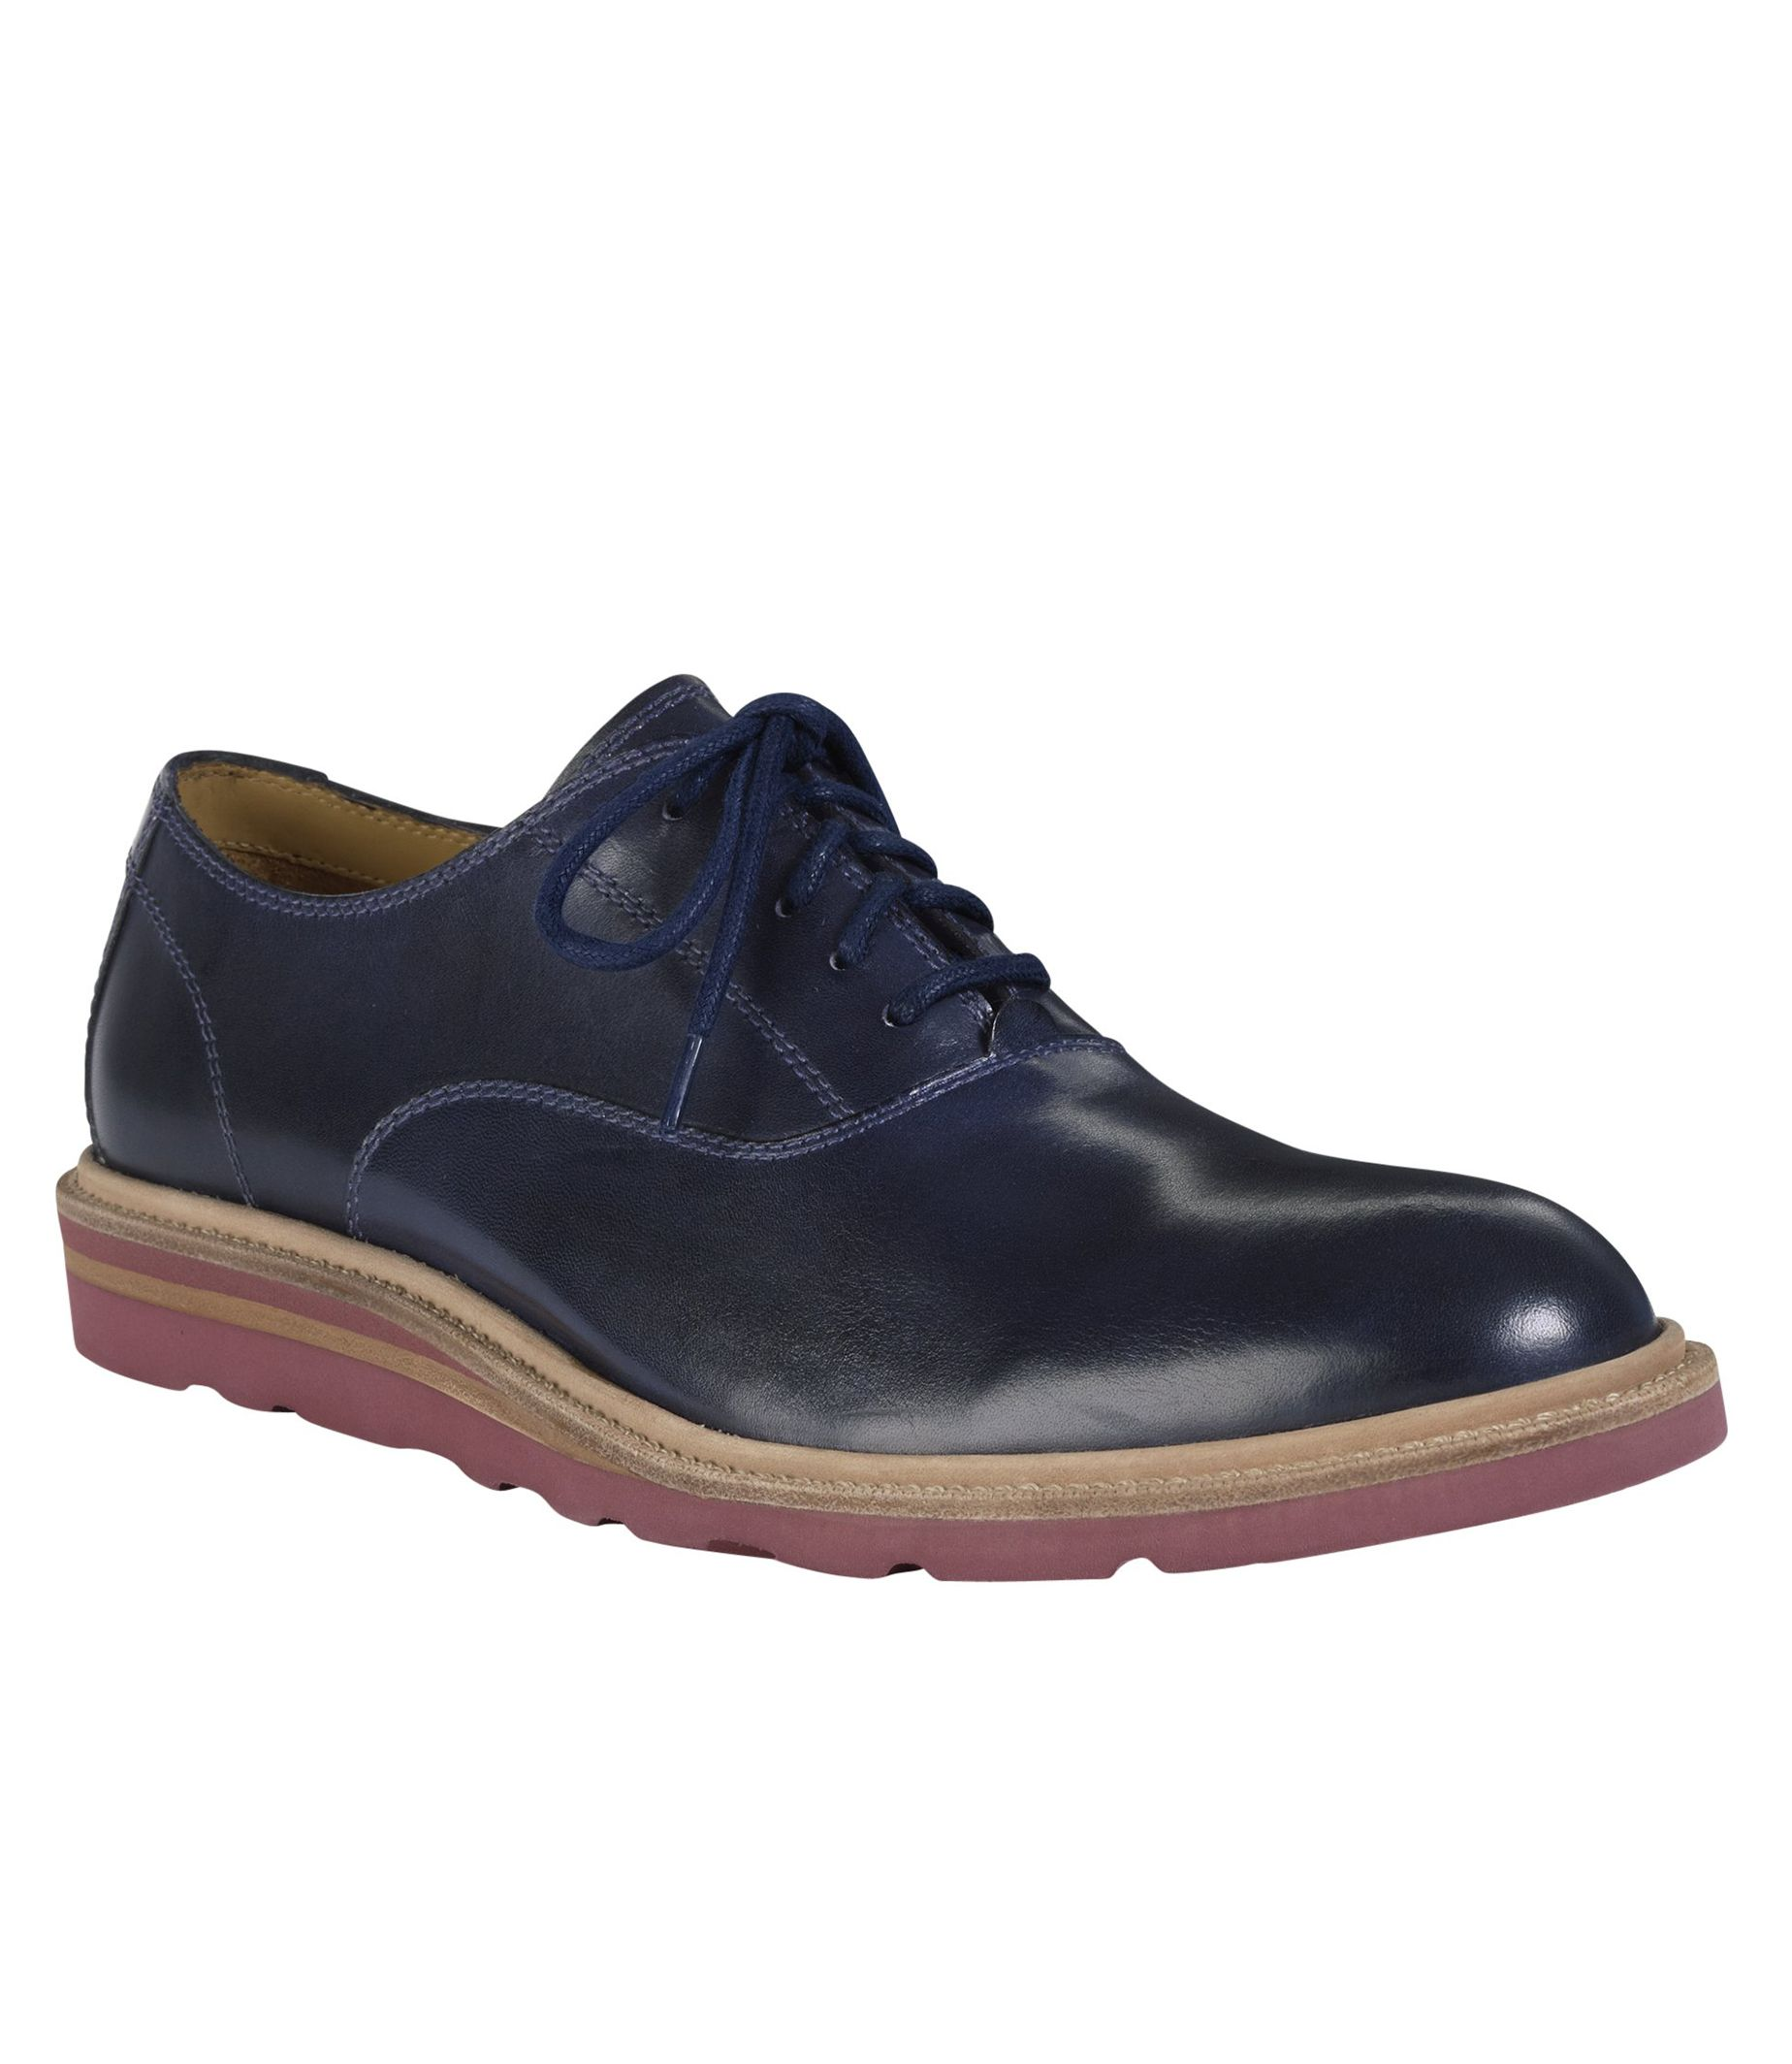 Christy Wedge Plain Oxford Shoe by Cole Haan JoS. A. Bank